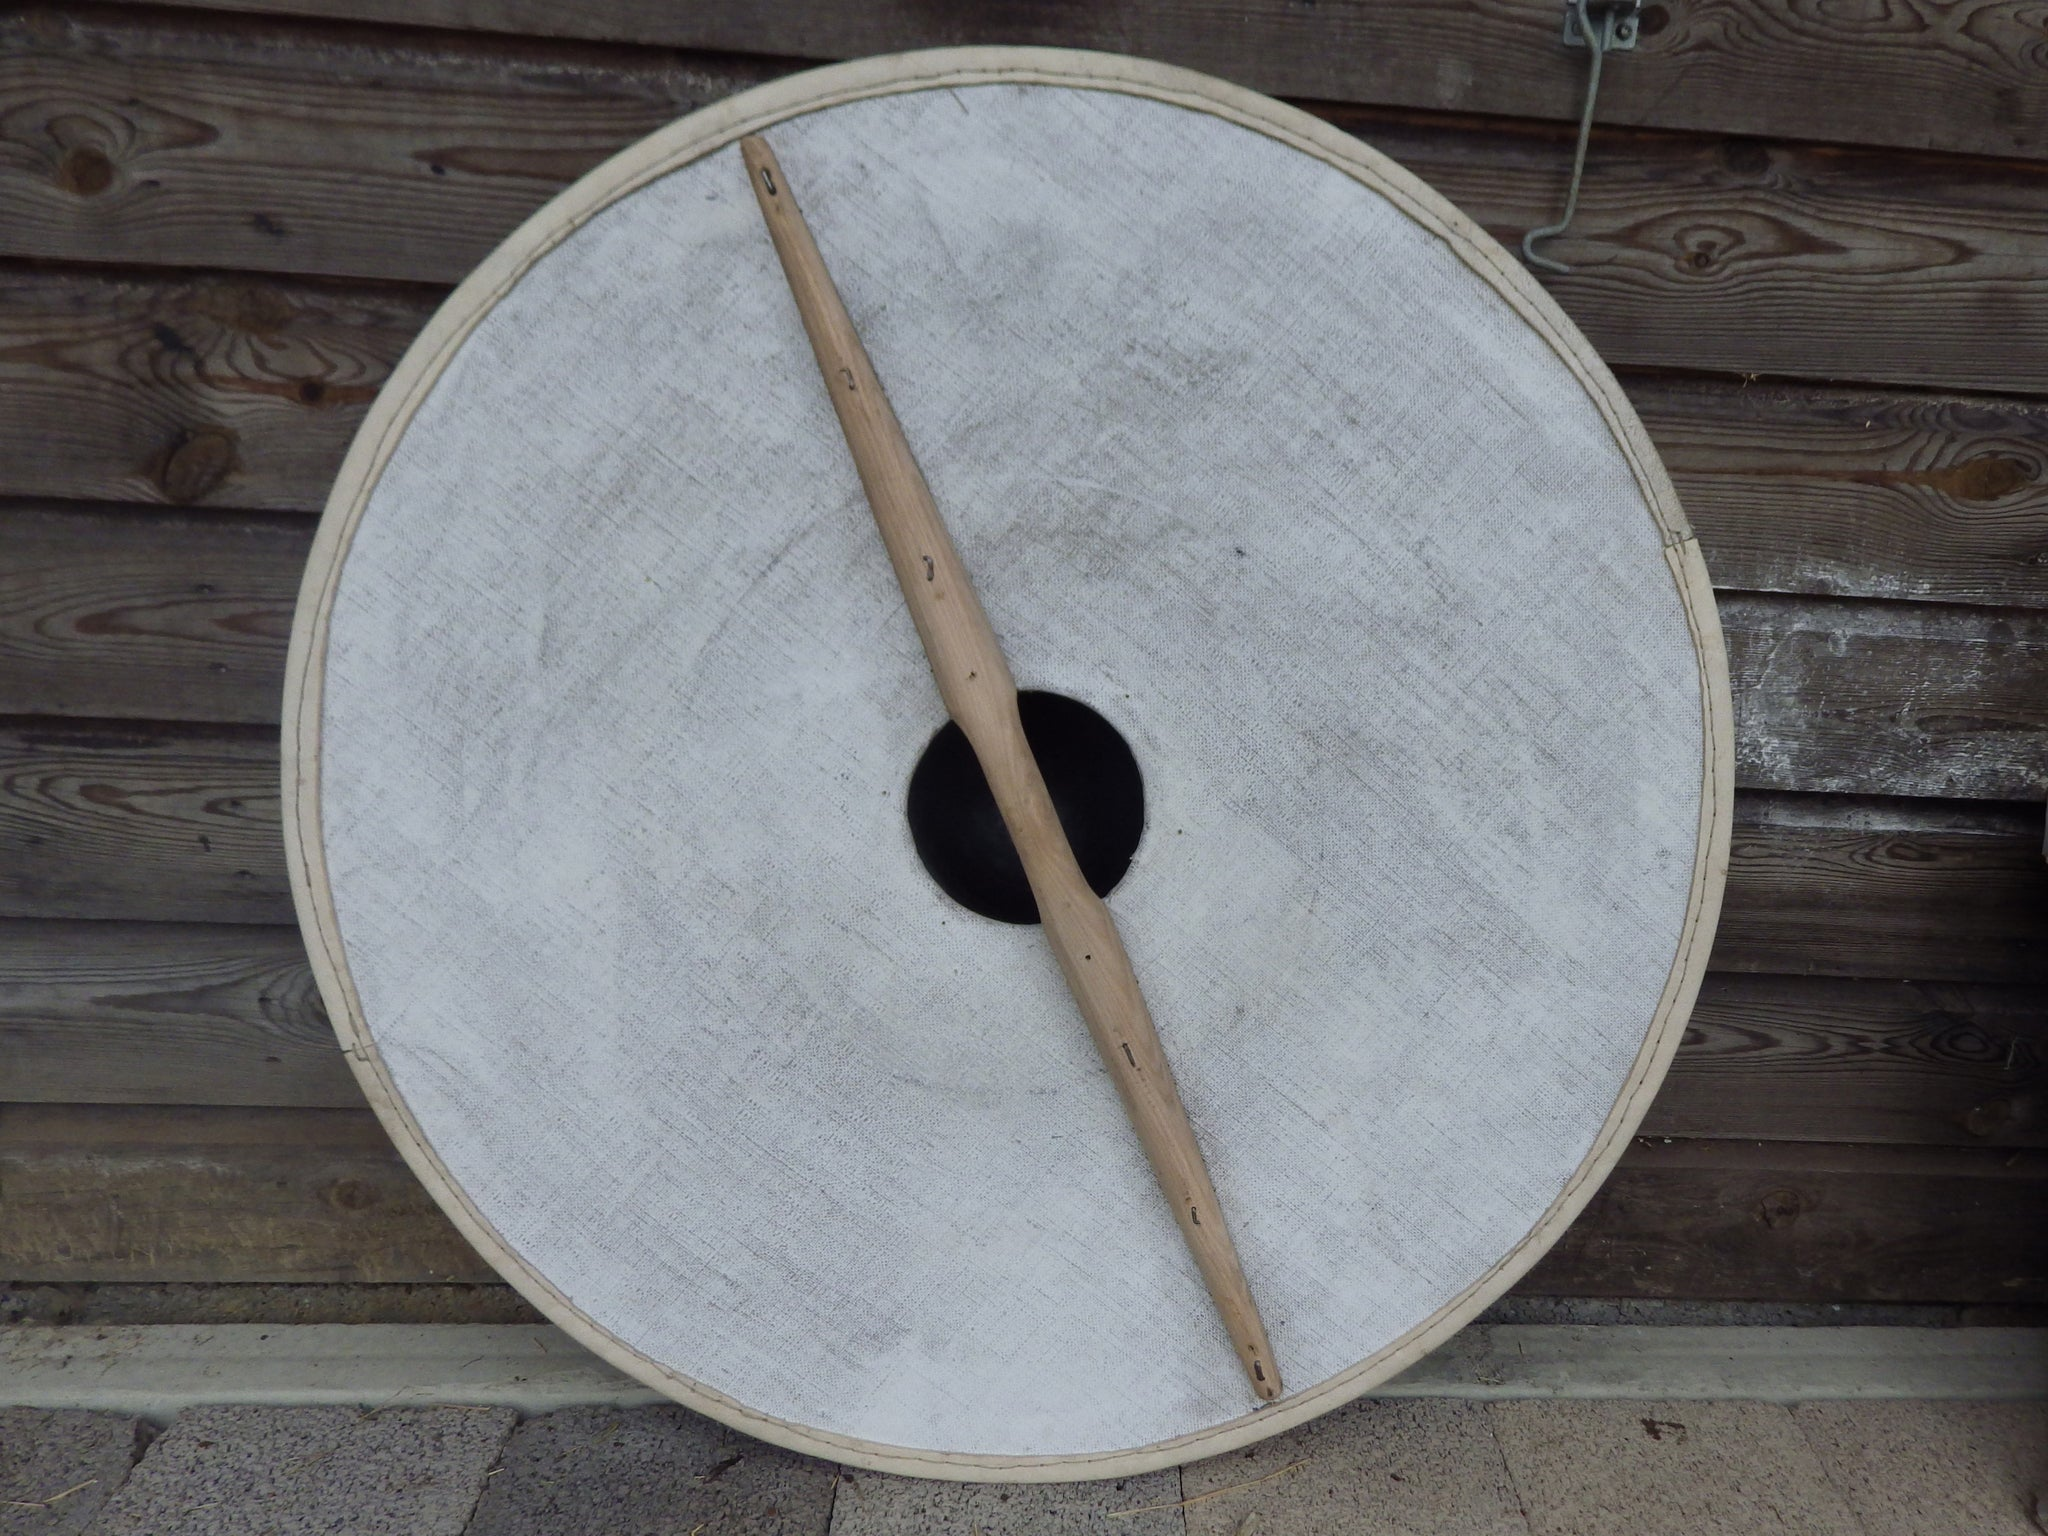 how to make a saxon shield out of cardboard